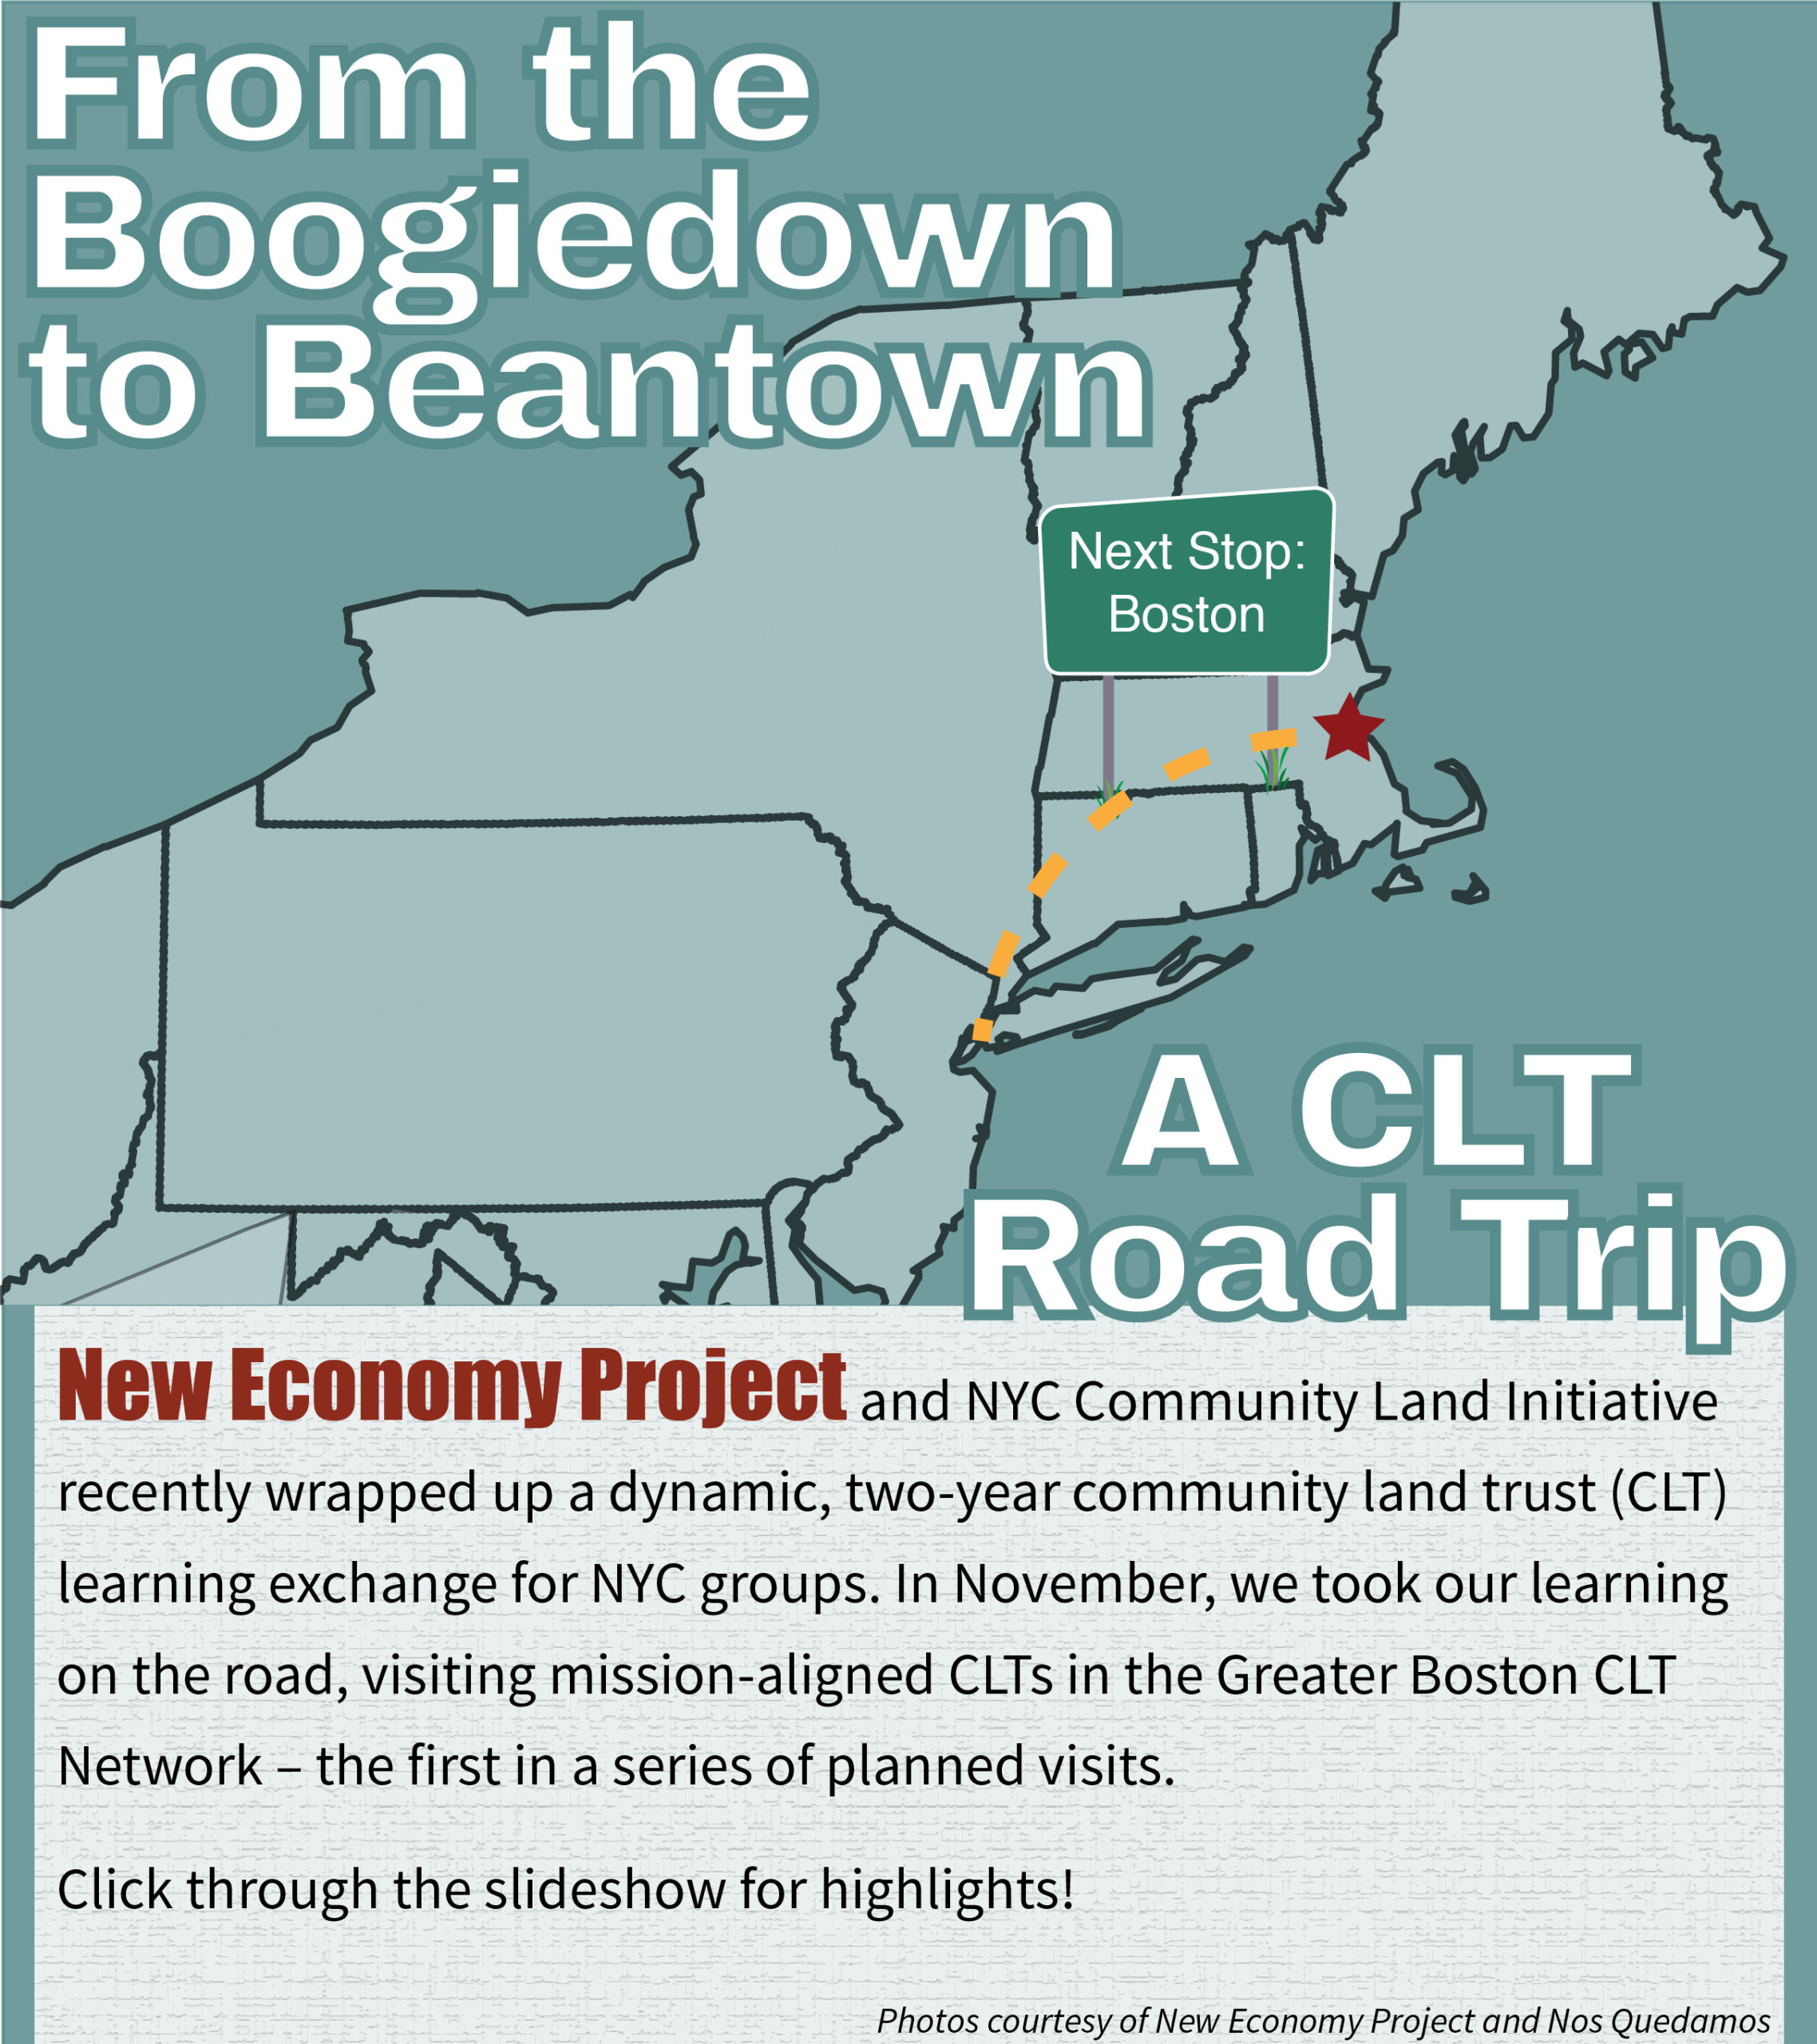 From the Boogiedown to Beantown: A CLT Road Trip